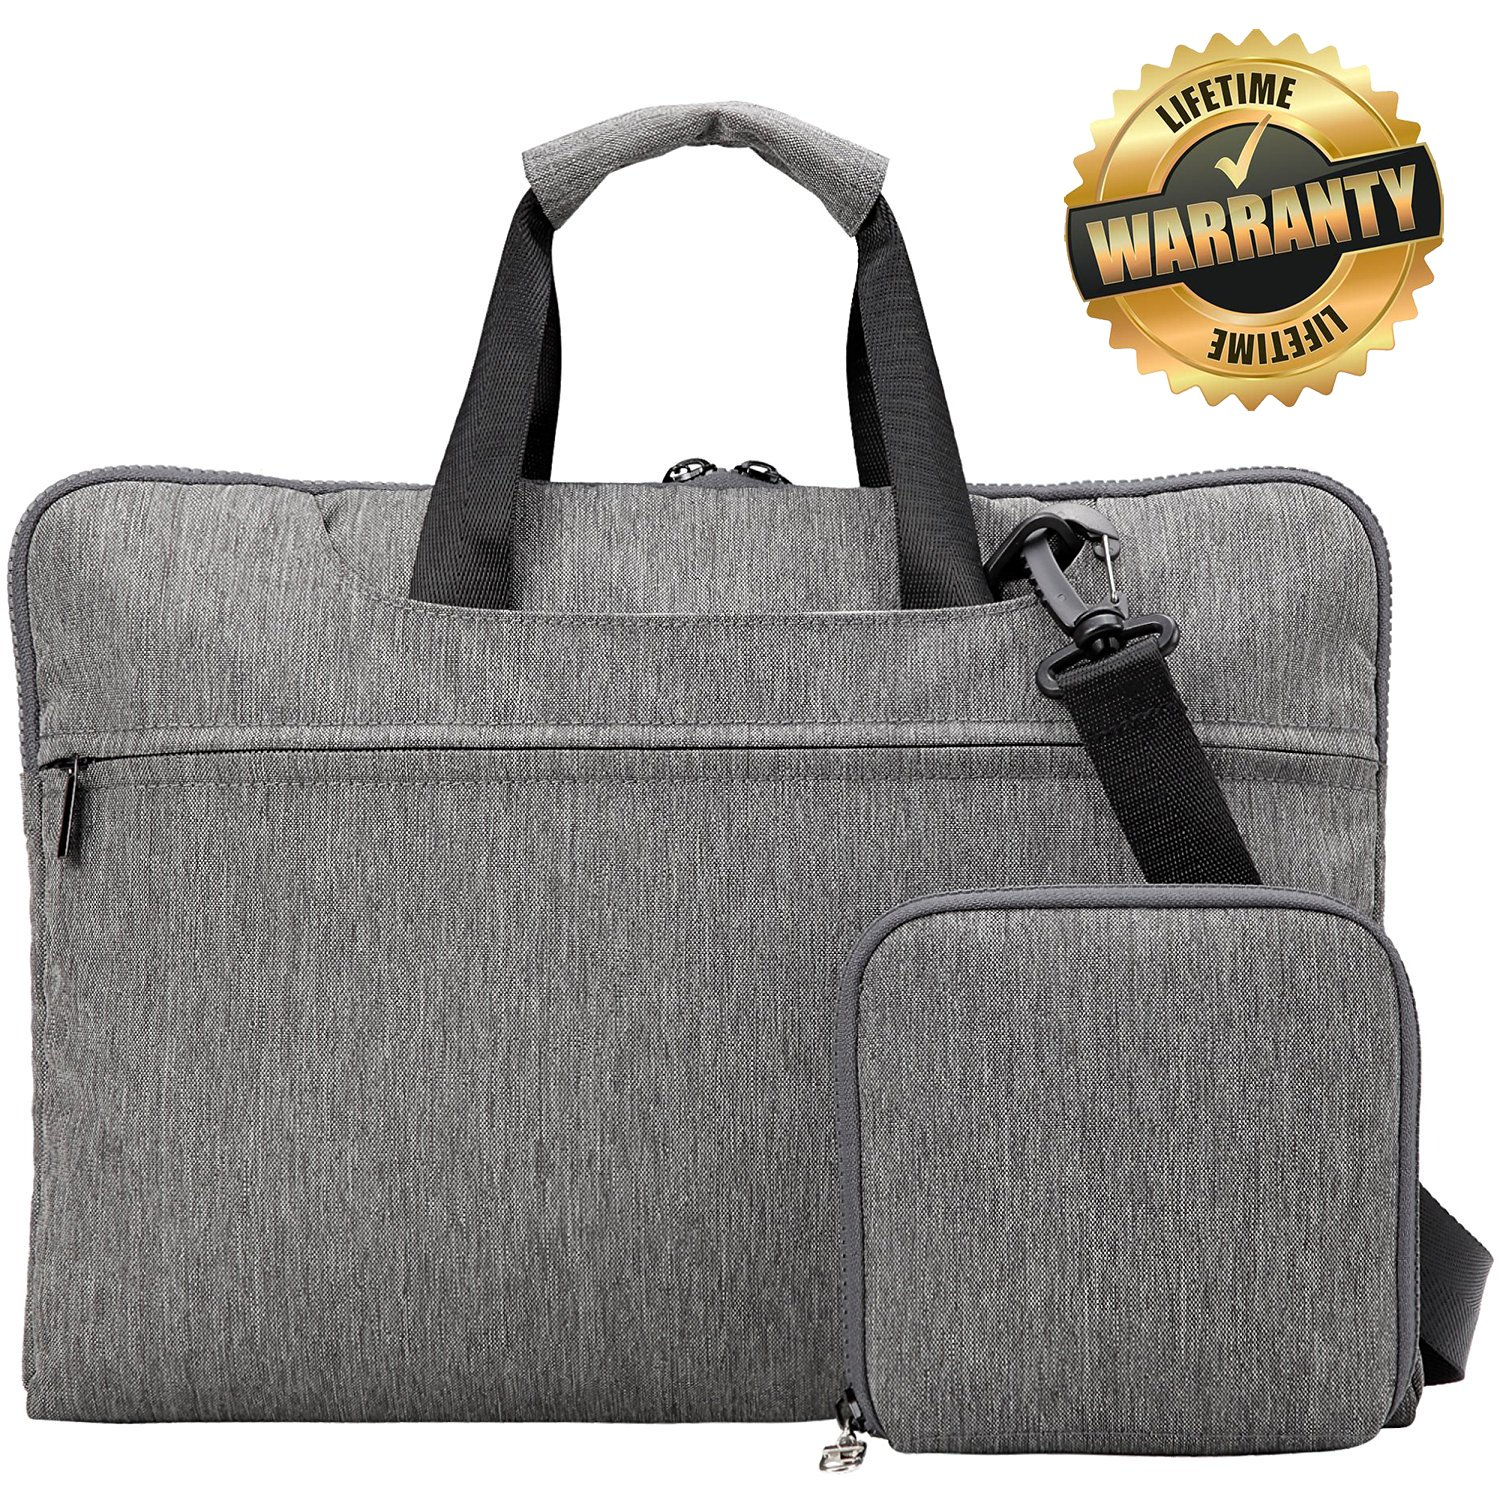 Laptop Tablet Bag - Computer Shoulder Messenger Briefcase For 13,14,15 inch Laptops/Tablet/Macbook/Notebook